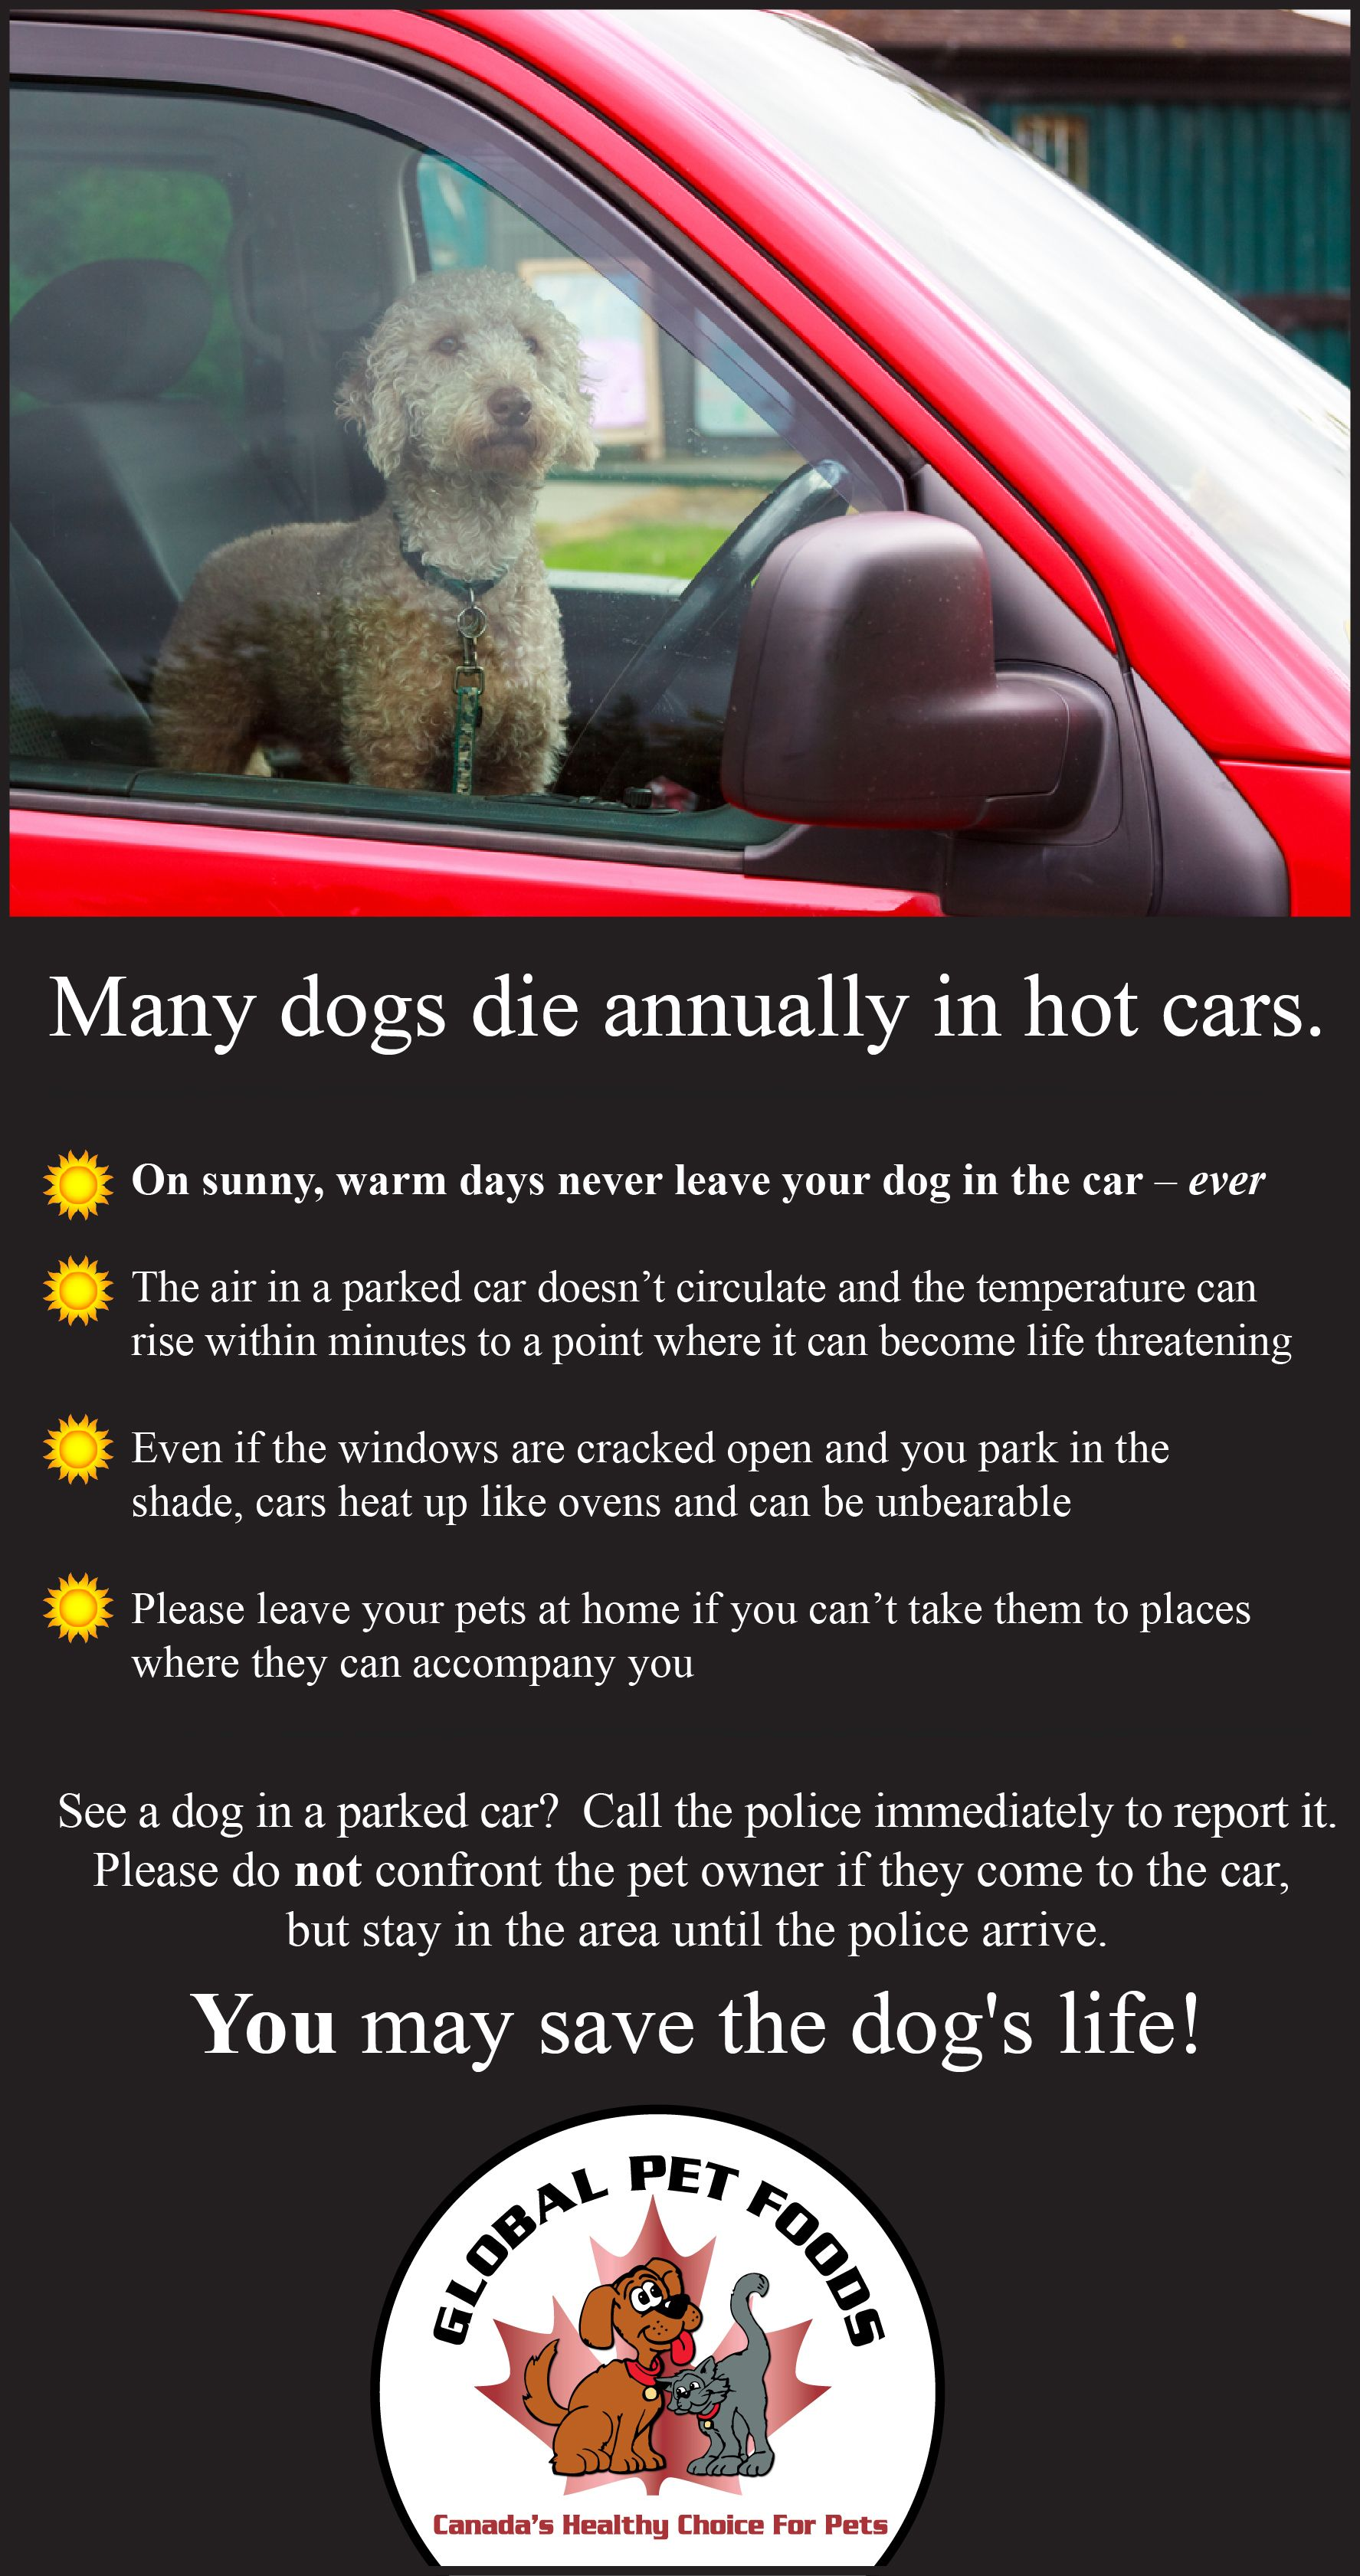 Now That We Re Full Swing Into The Summer Weather We Want To Remind Everyone That Pets Should Never Ever Be Left In The With Images Sick Pets Pet Food Store Food